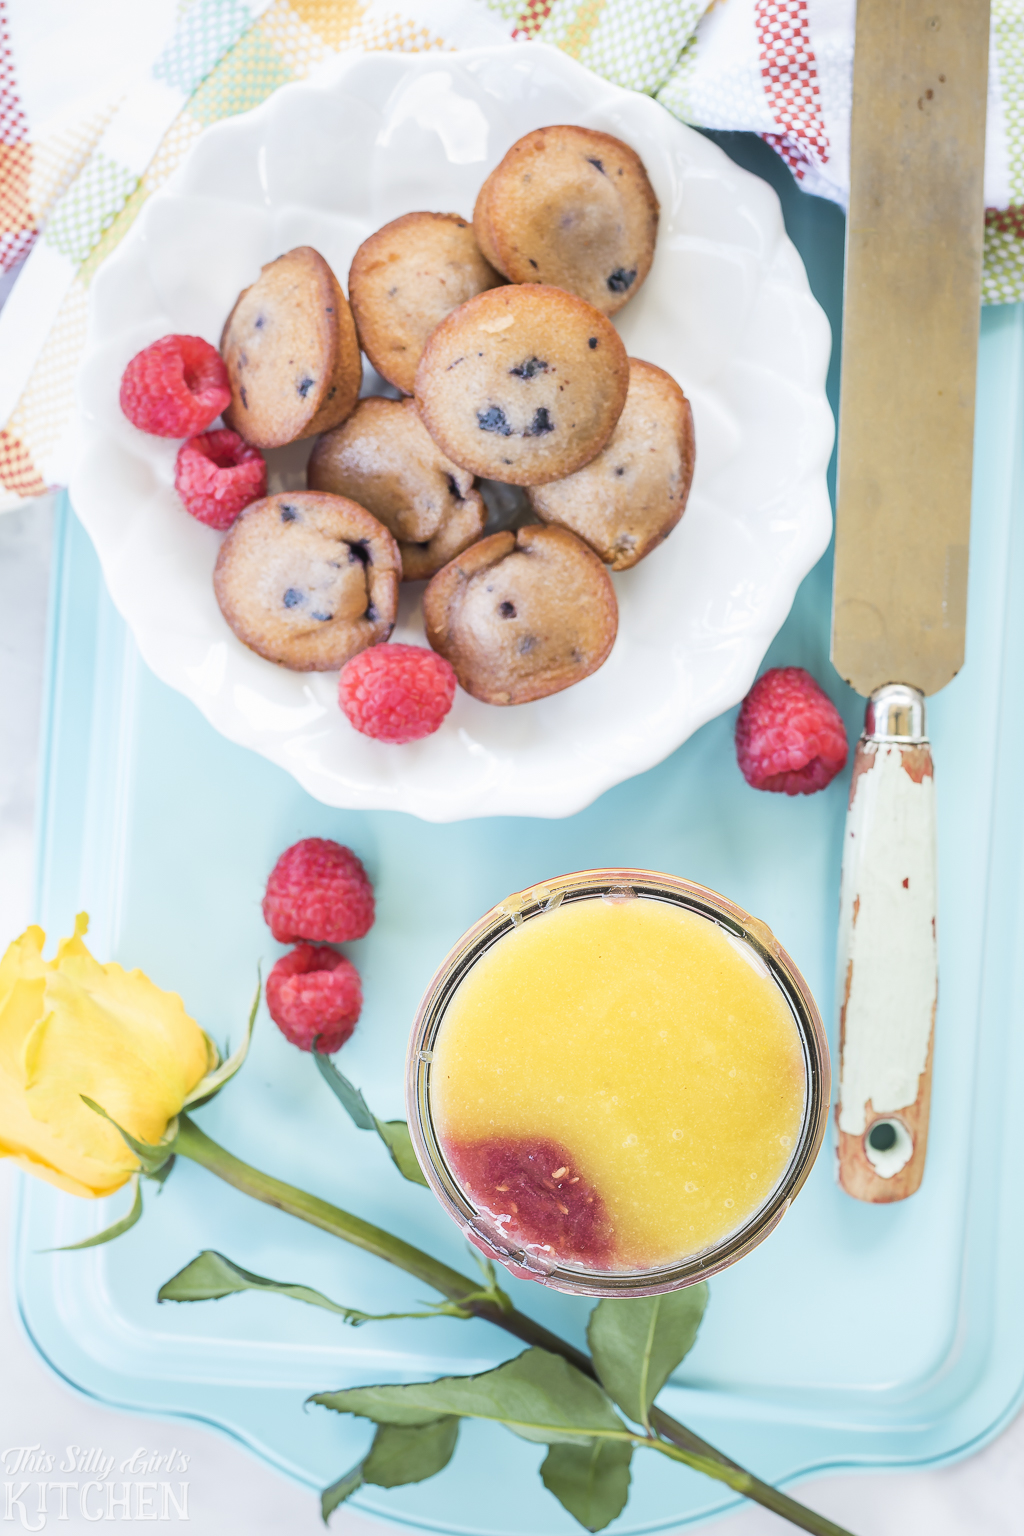 Raspberry Lemonade Curd, a beautiful, layered curd made with fresh squeezed lemons and raspberries. Perfect for slathering on toast, muffins or for use in desserts. from ThisSillyGirlsKitchen.com